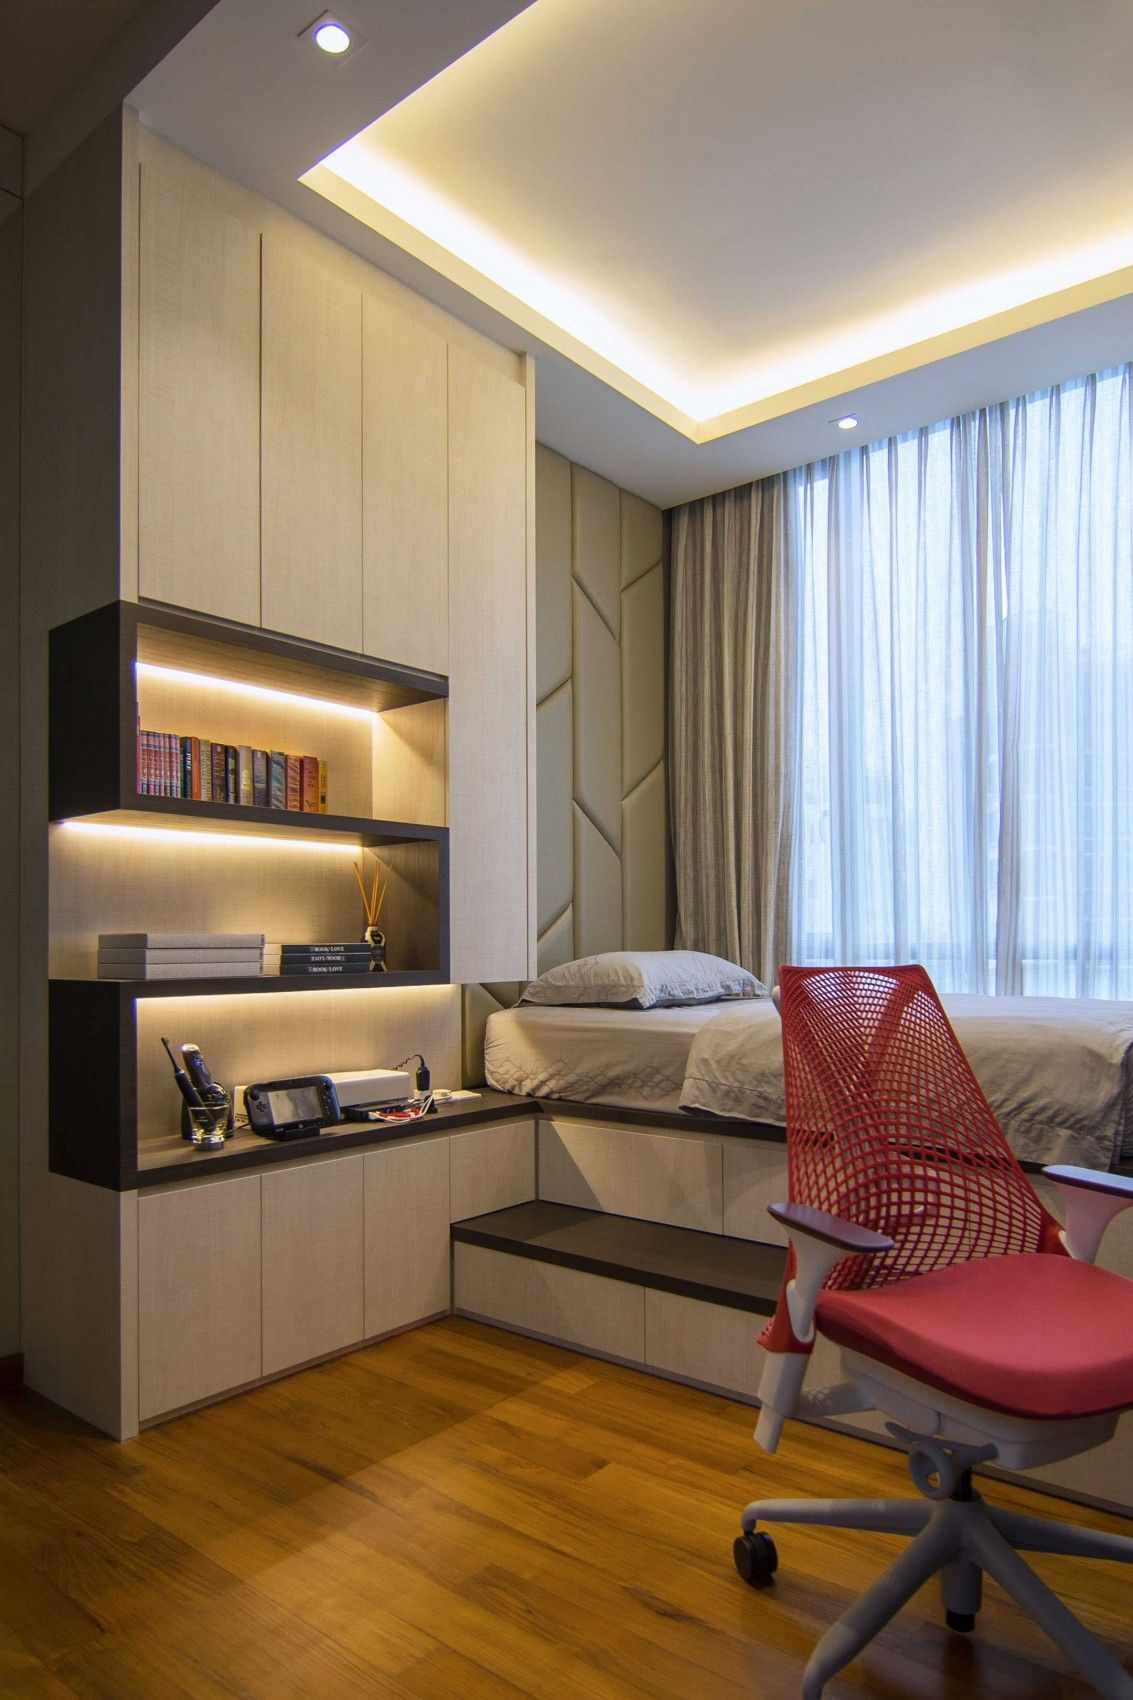 Ameublement Petit Espace Elegant Contemporary Apartment In Singapore Tiny Studio